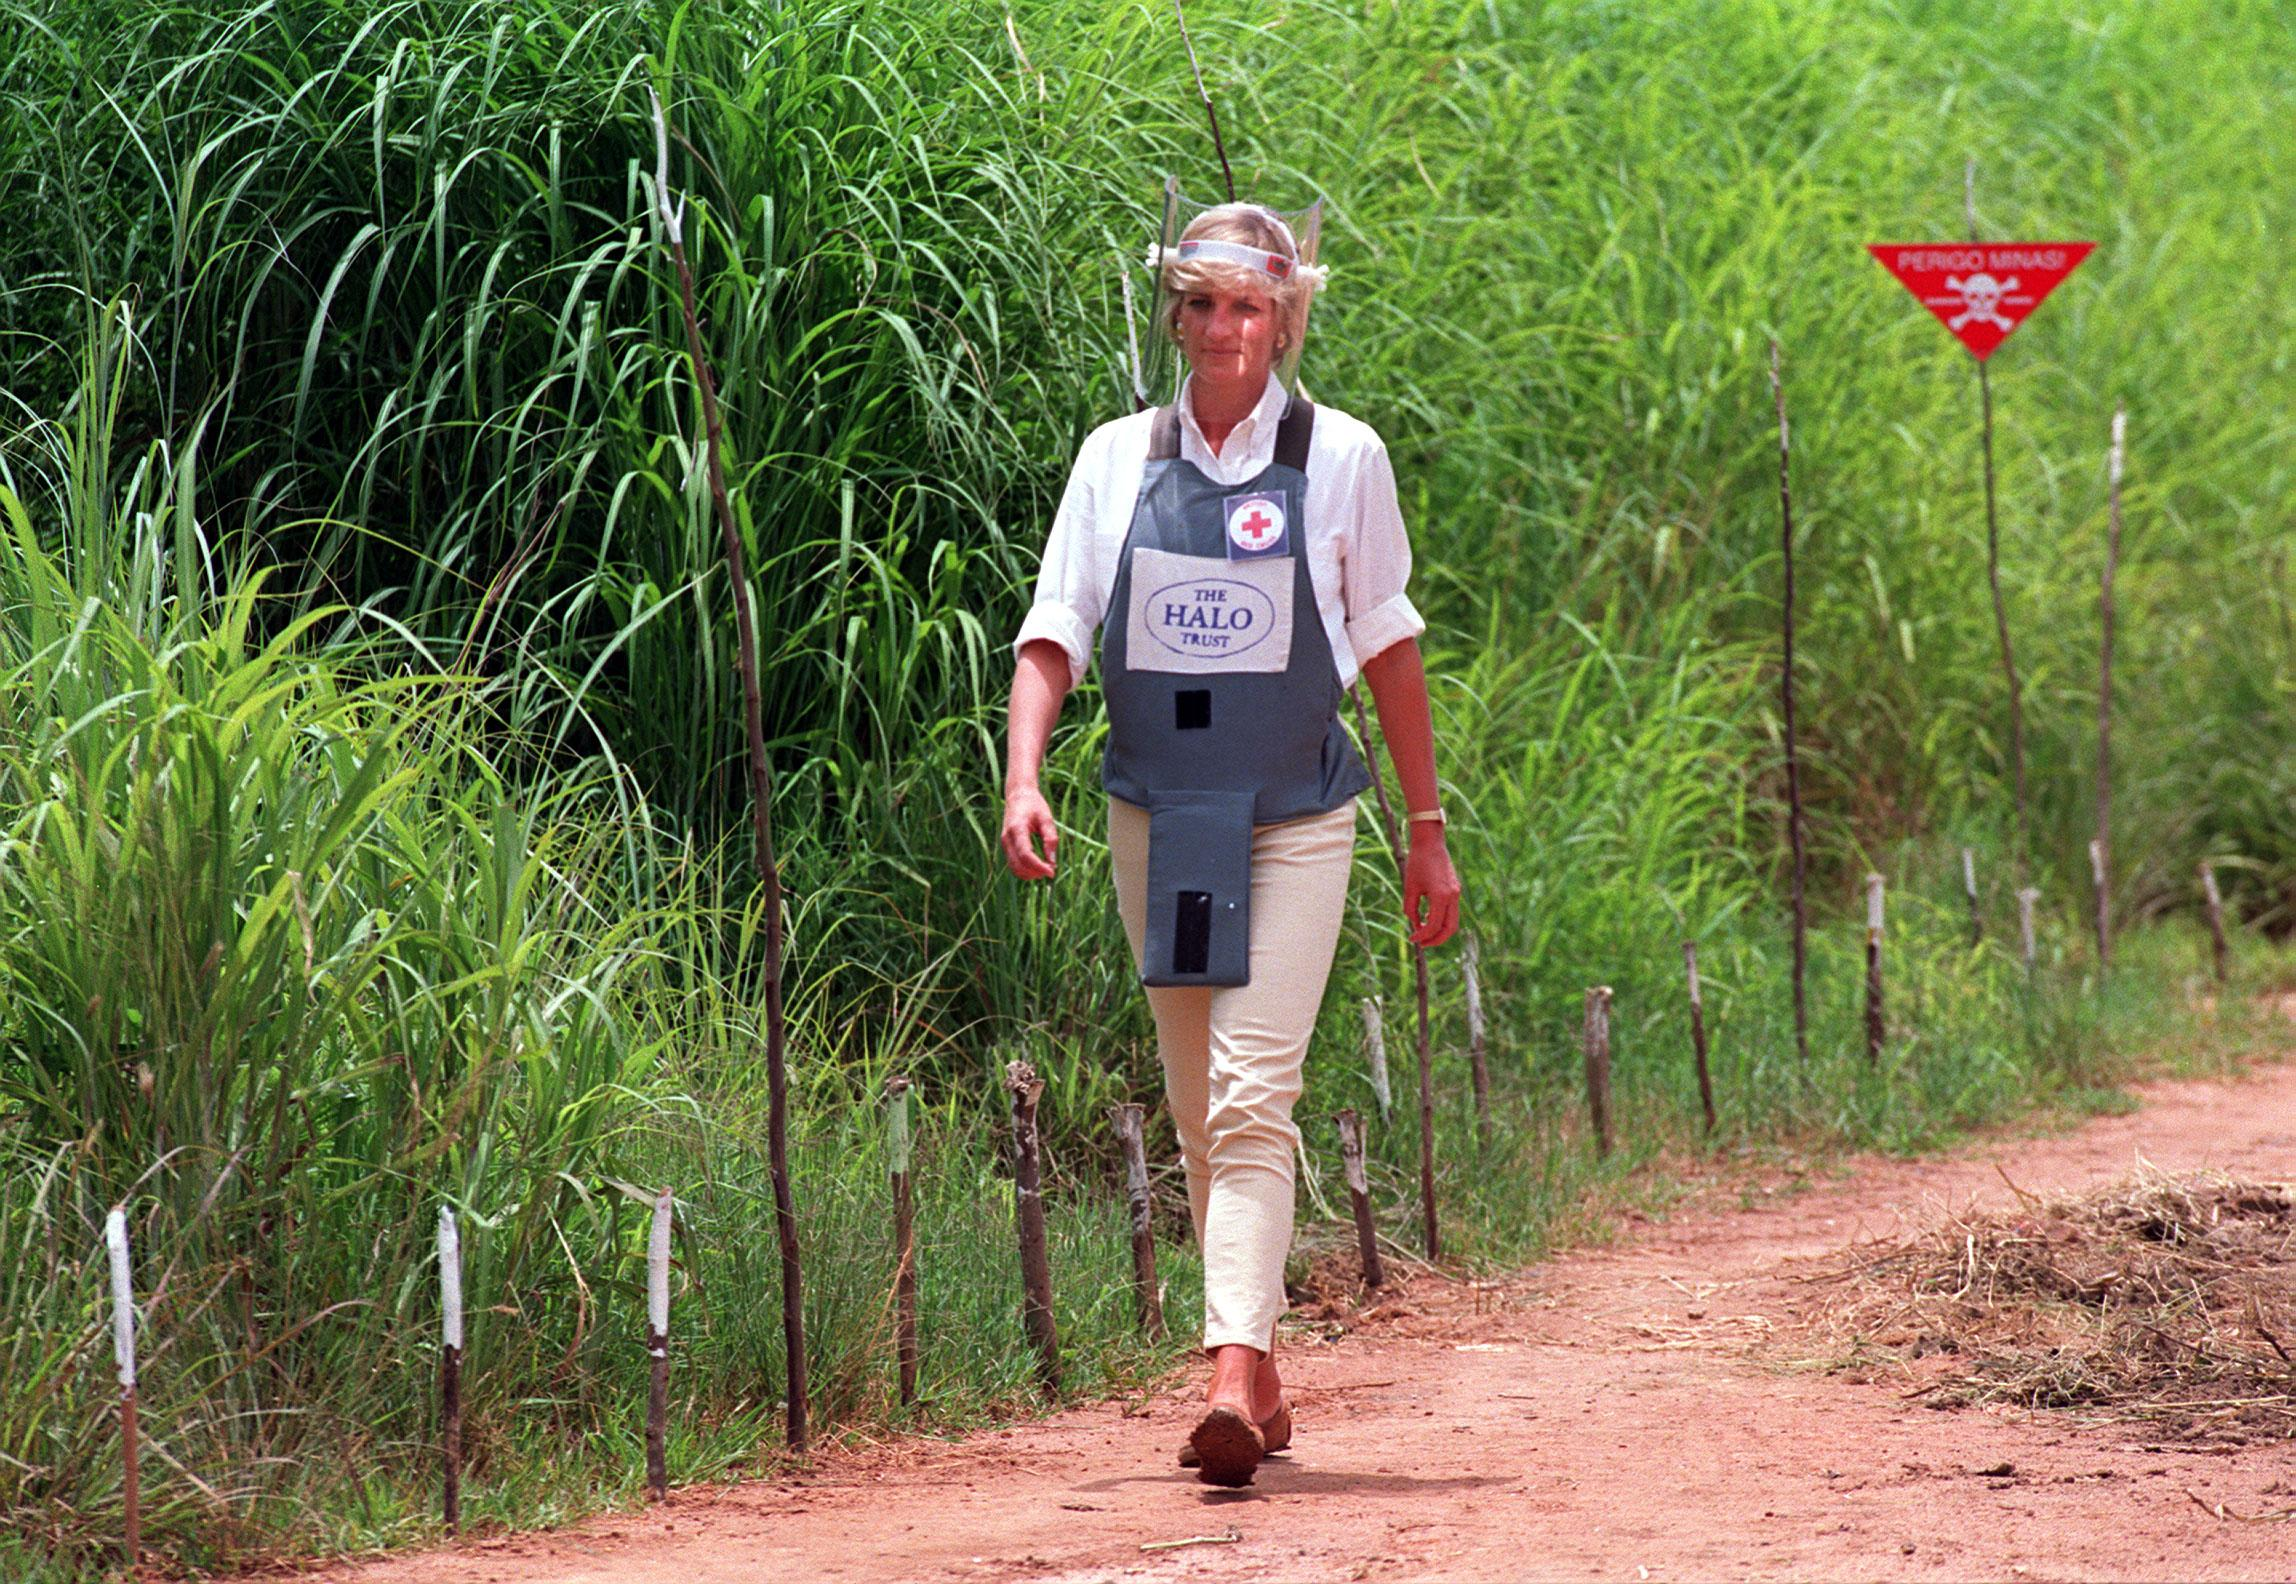 File photo dated 15/01/97 of Diana, Princess of Wales wearing a bombproof visor during her visit to a minefield in Huambo, in Angola. The Duke of Sussex has donned body armour and a protective visor to walk through a partially cleared minefield during a visit to the Halo Trust in Dirico, Angola, in scenes reminiscent of his mother Diana, on day five of the royal tour of Africa. [Photo: PA]